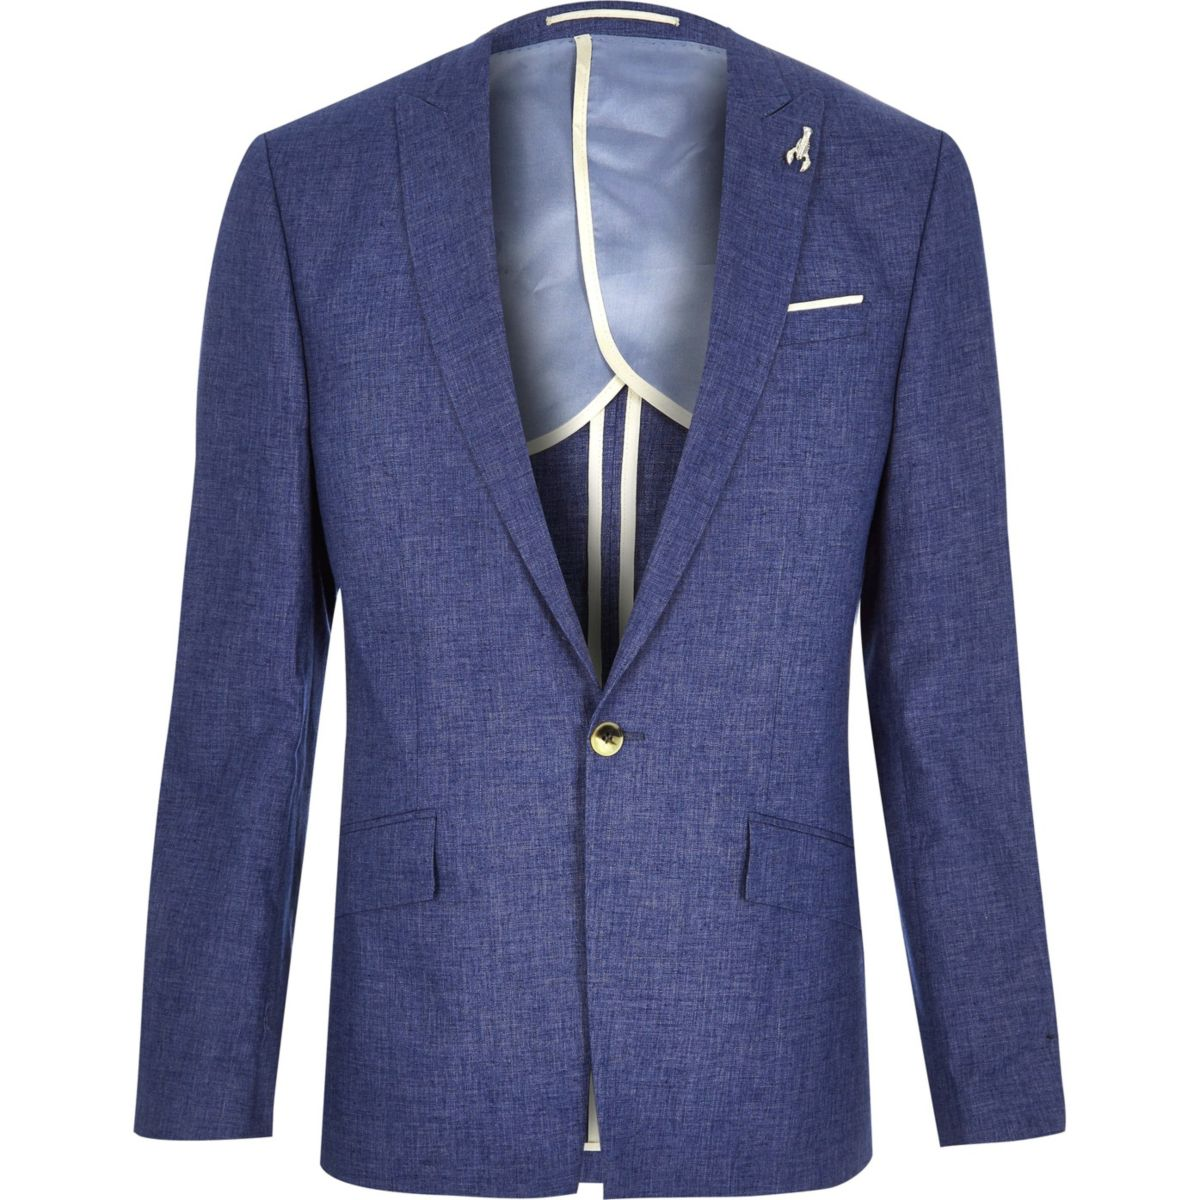 River Island Blue Linen Suit